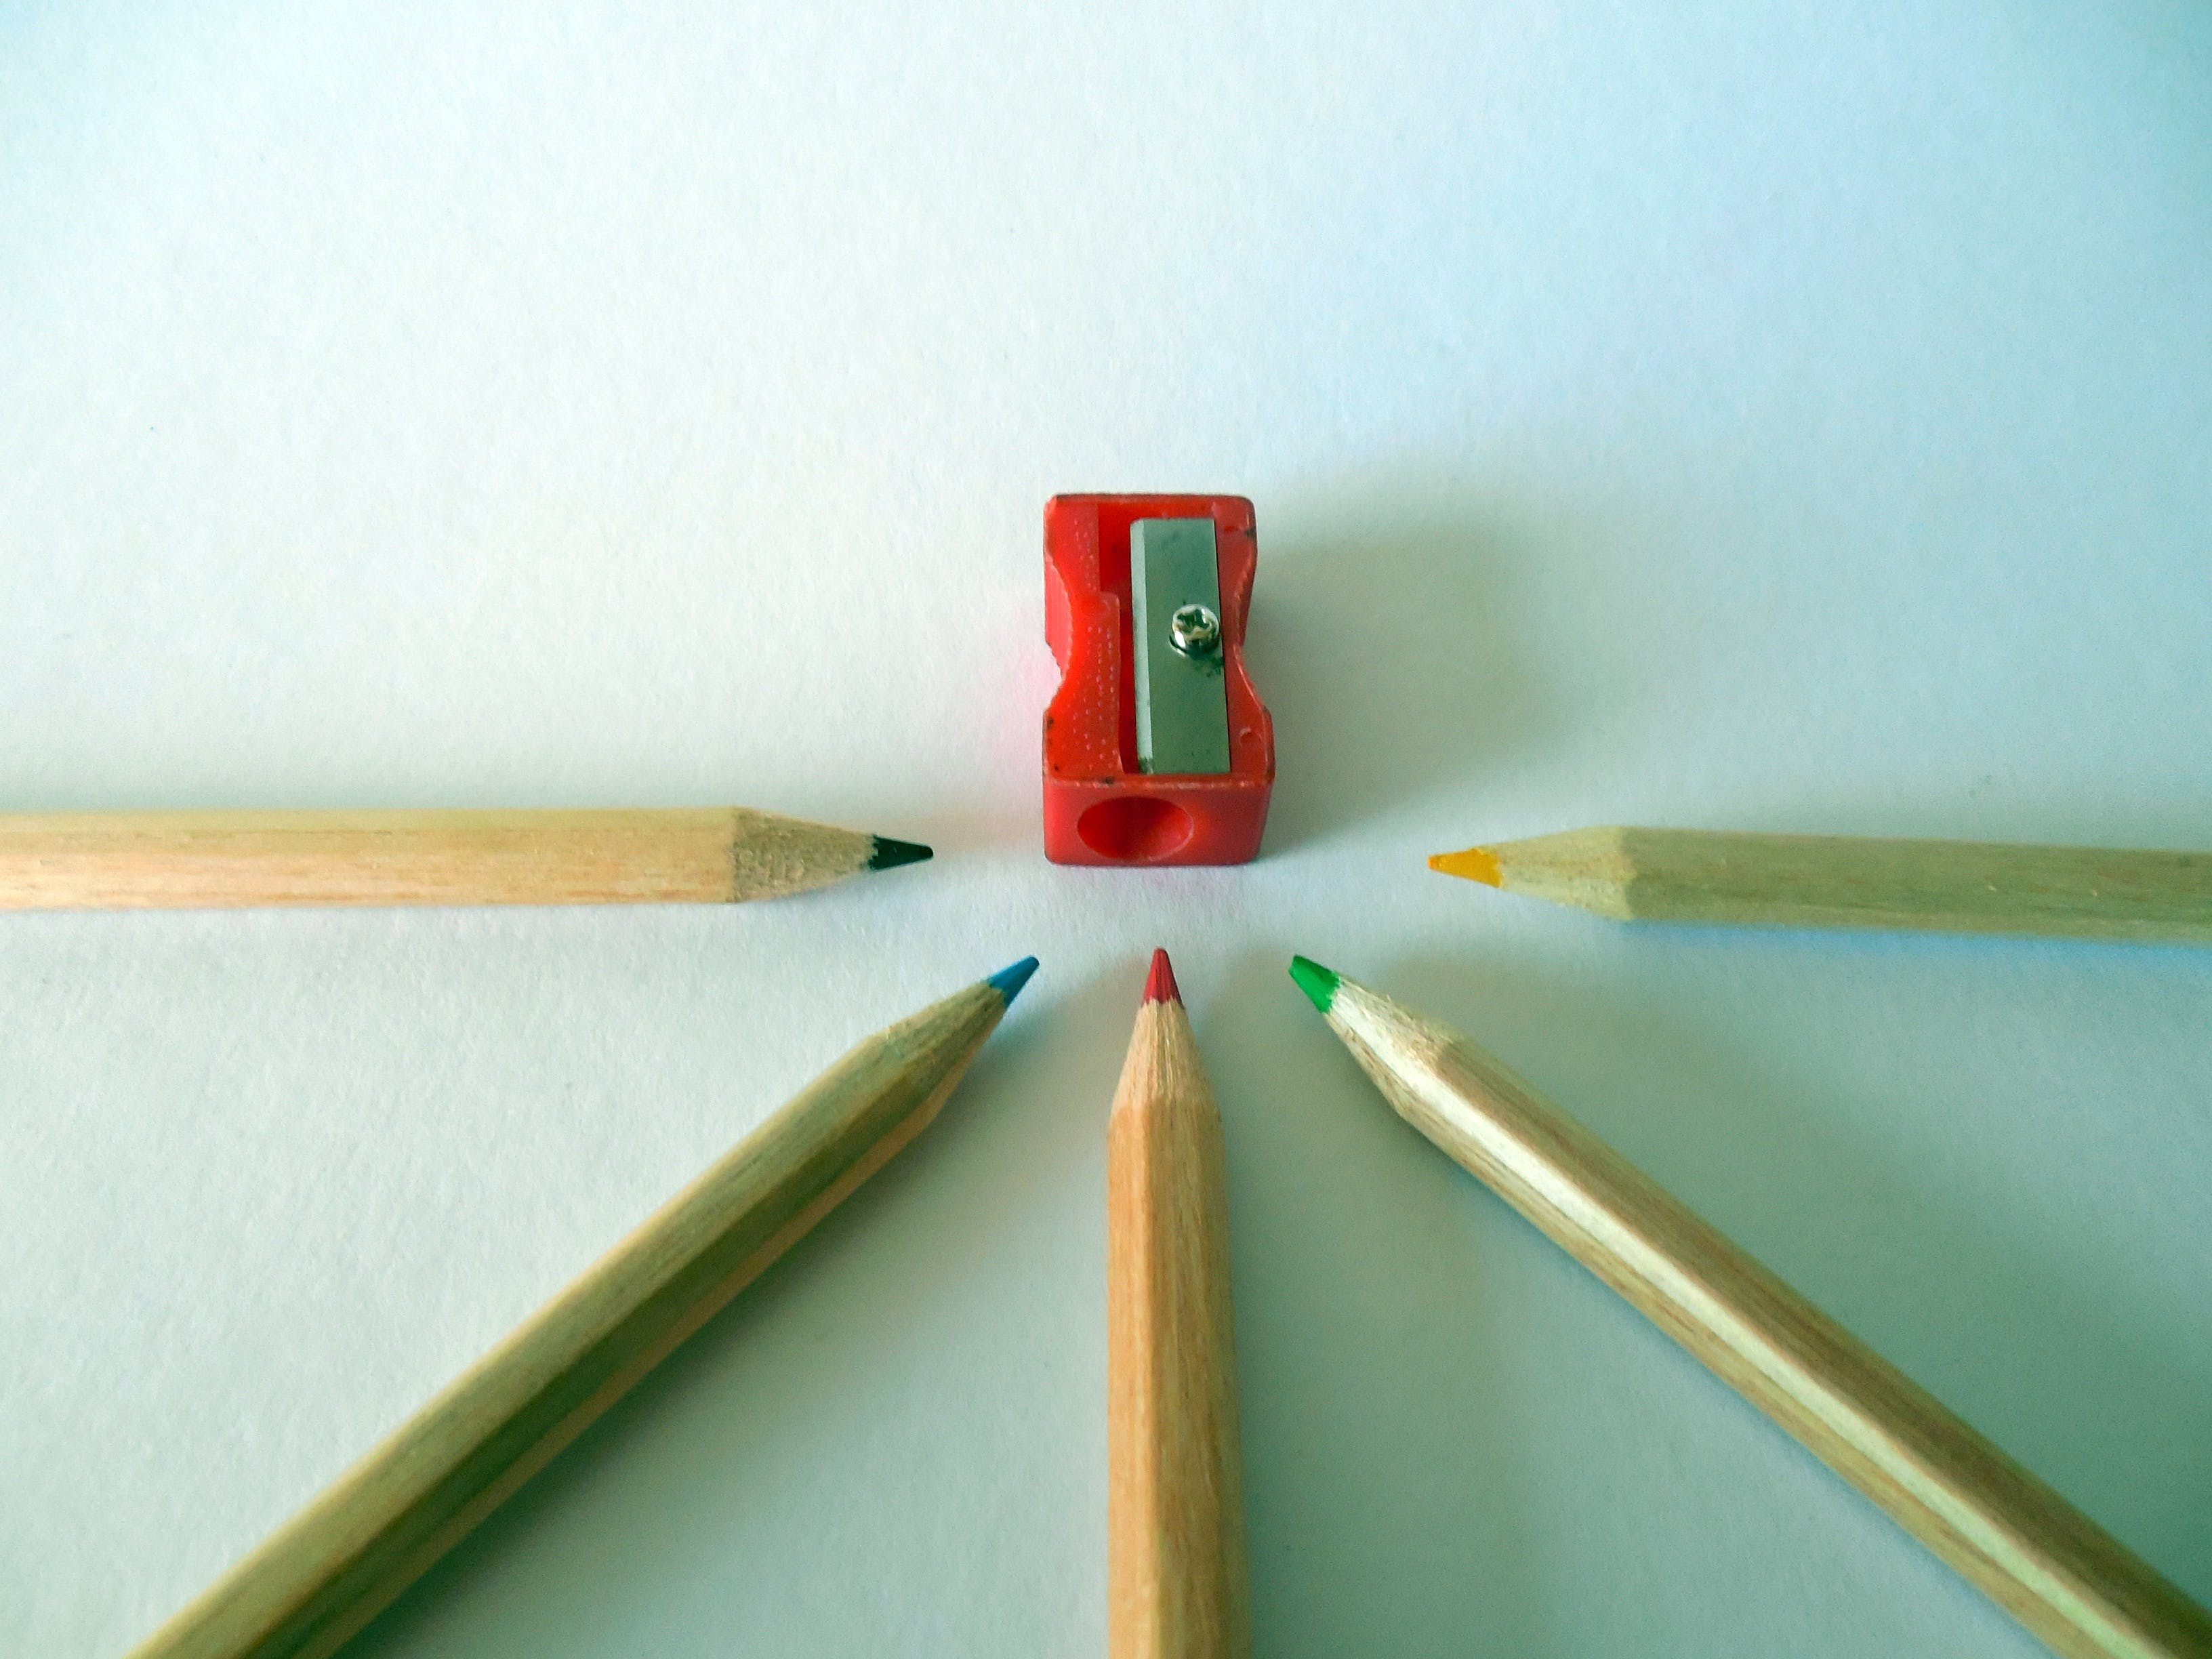 Flat Lay Photography of Red Pencil Sharpener With Four Colored Pencils